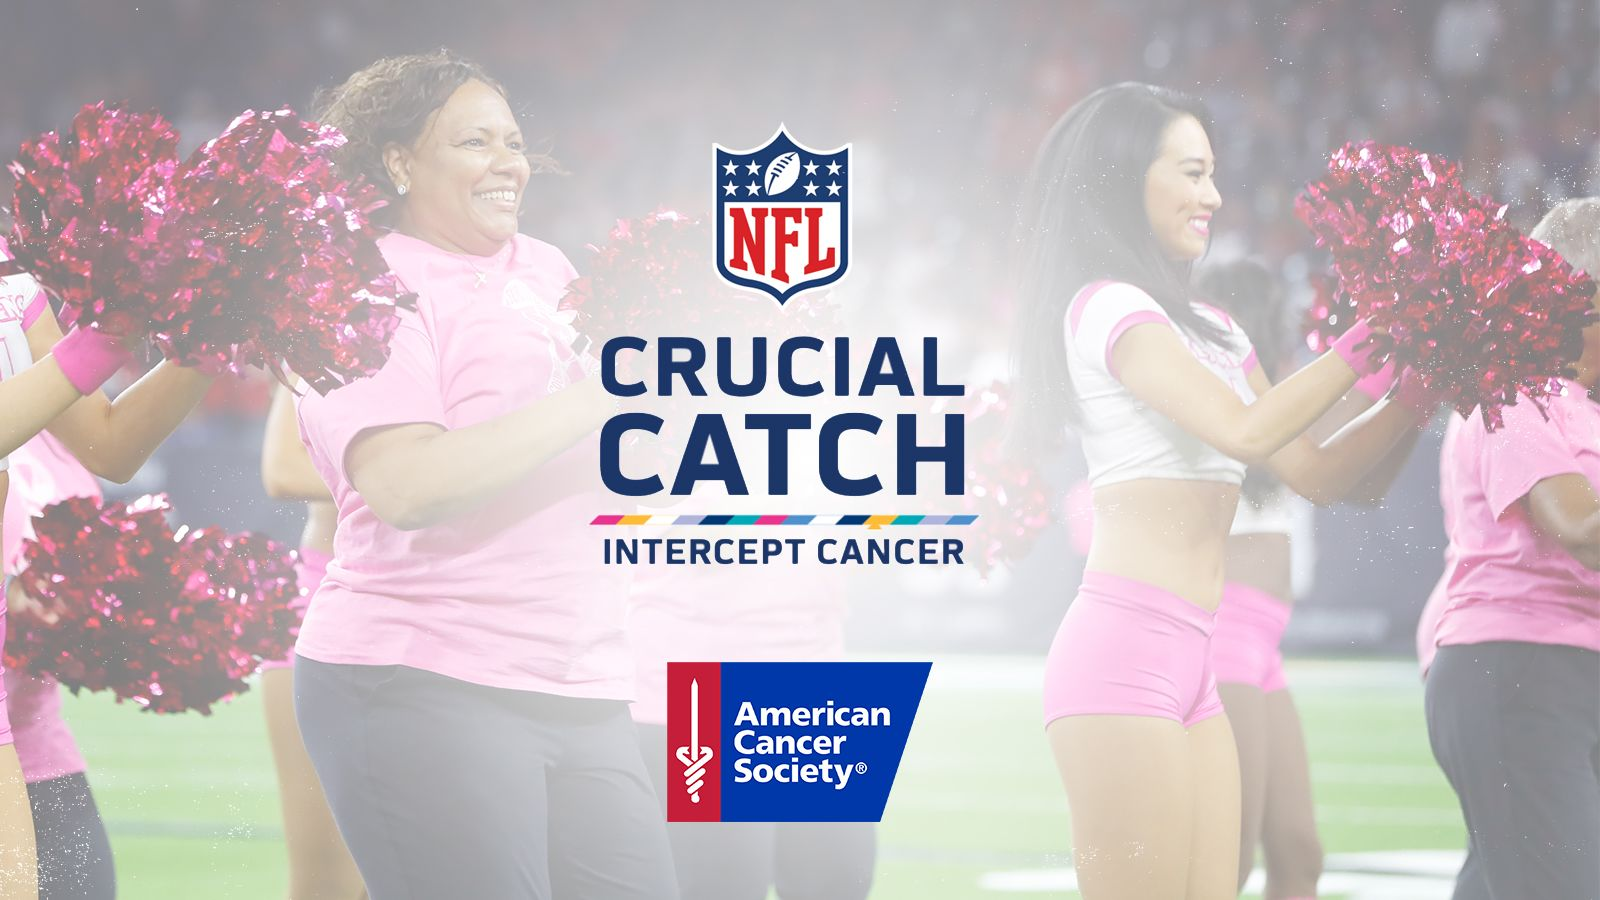 Crucial Catch. Intercept Cancer. American Cancer Society.